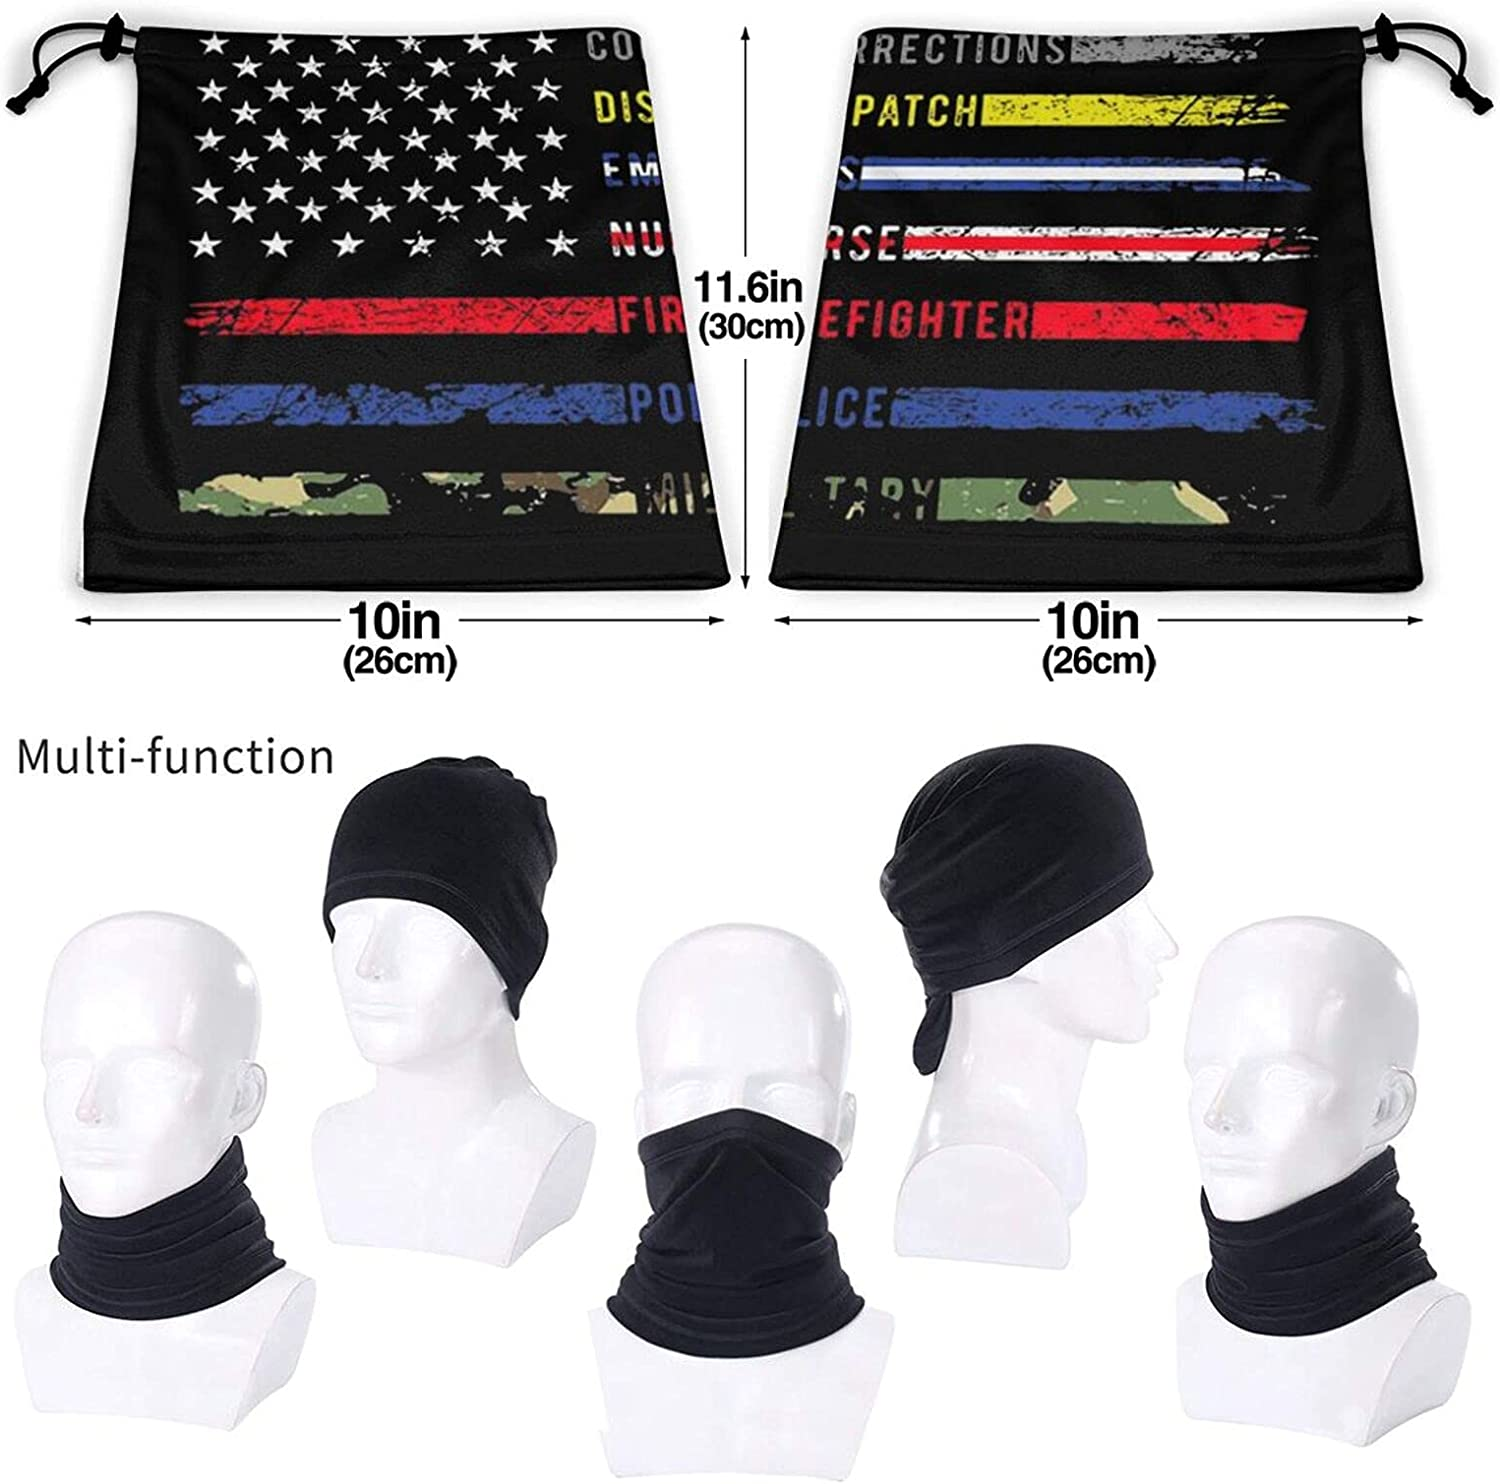 First responders hero flag nurse ems police fire military unisex winter neck gaiter face cover mask, windproof balaclava scarf for fishing, running & hiking